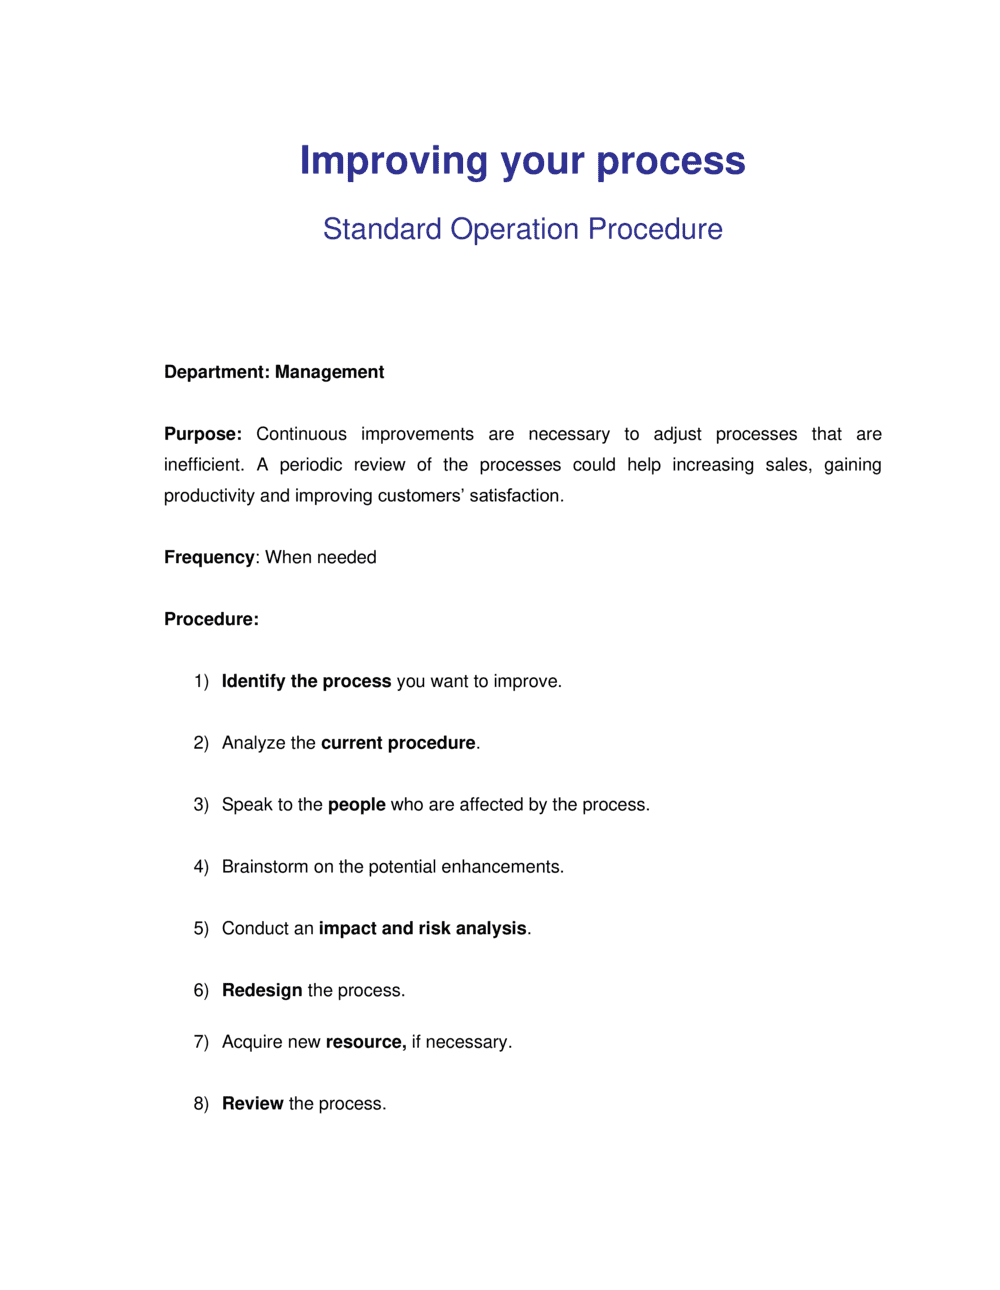 Business-in-a-Box's How to Improve any Business Process